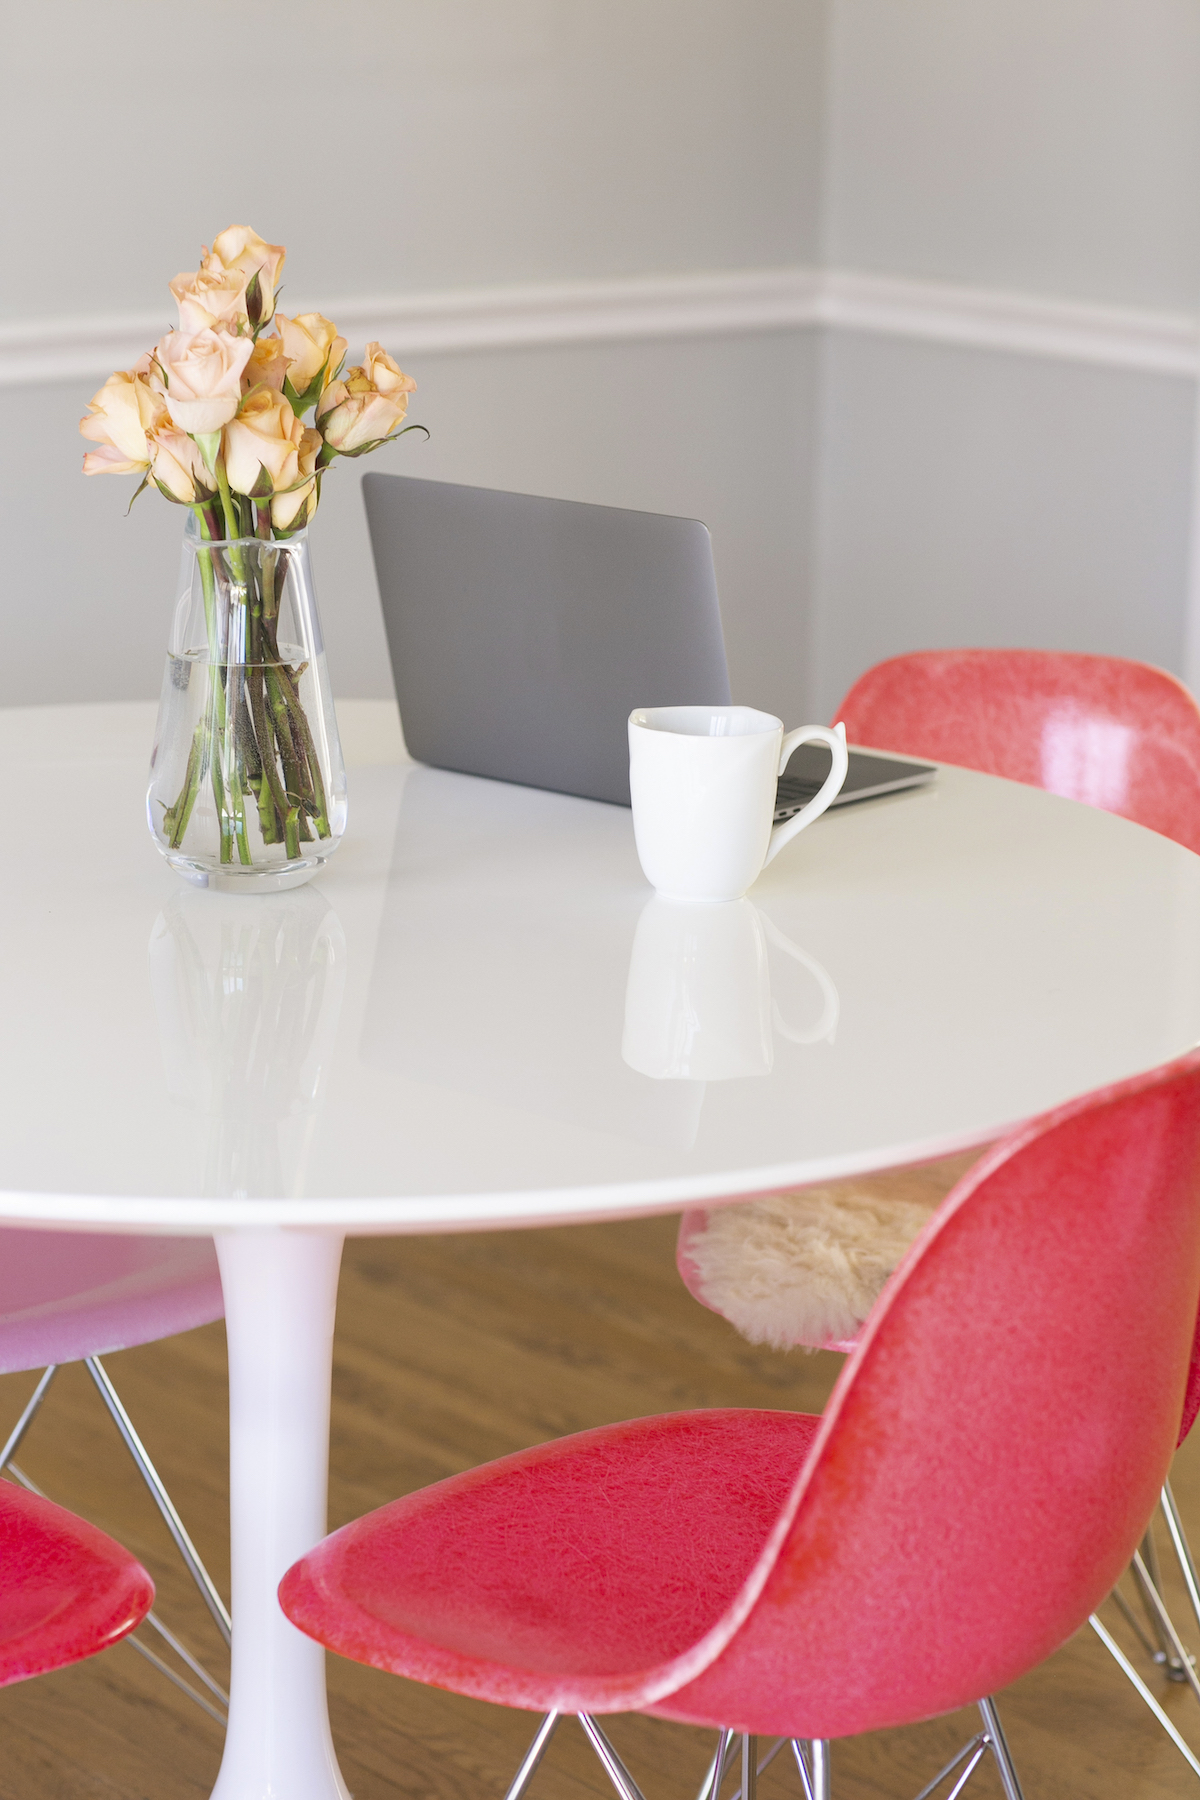 White table with pink chairs around, with laptop, flowers and coffee cup on the table. A Miramar, FL therapist for women gives tips for a self-compassion practice with perfectionism counseling in Miramar, FL. You can get online therapy in Florida here.